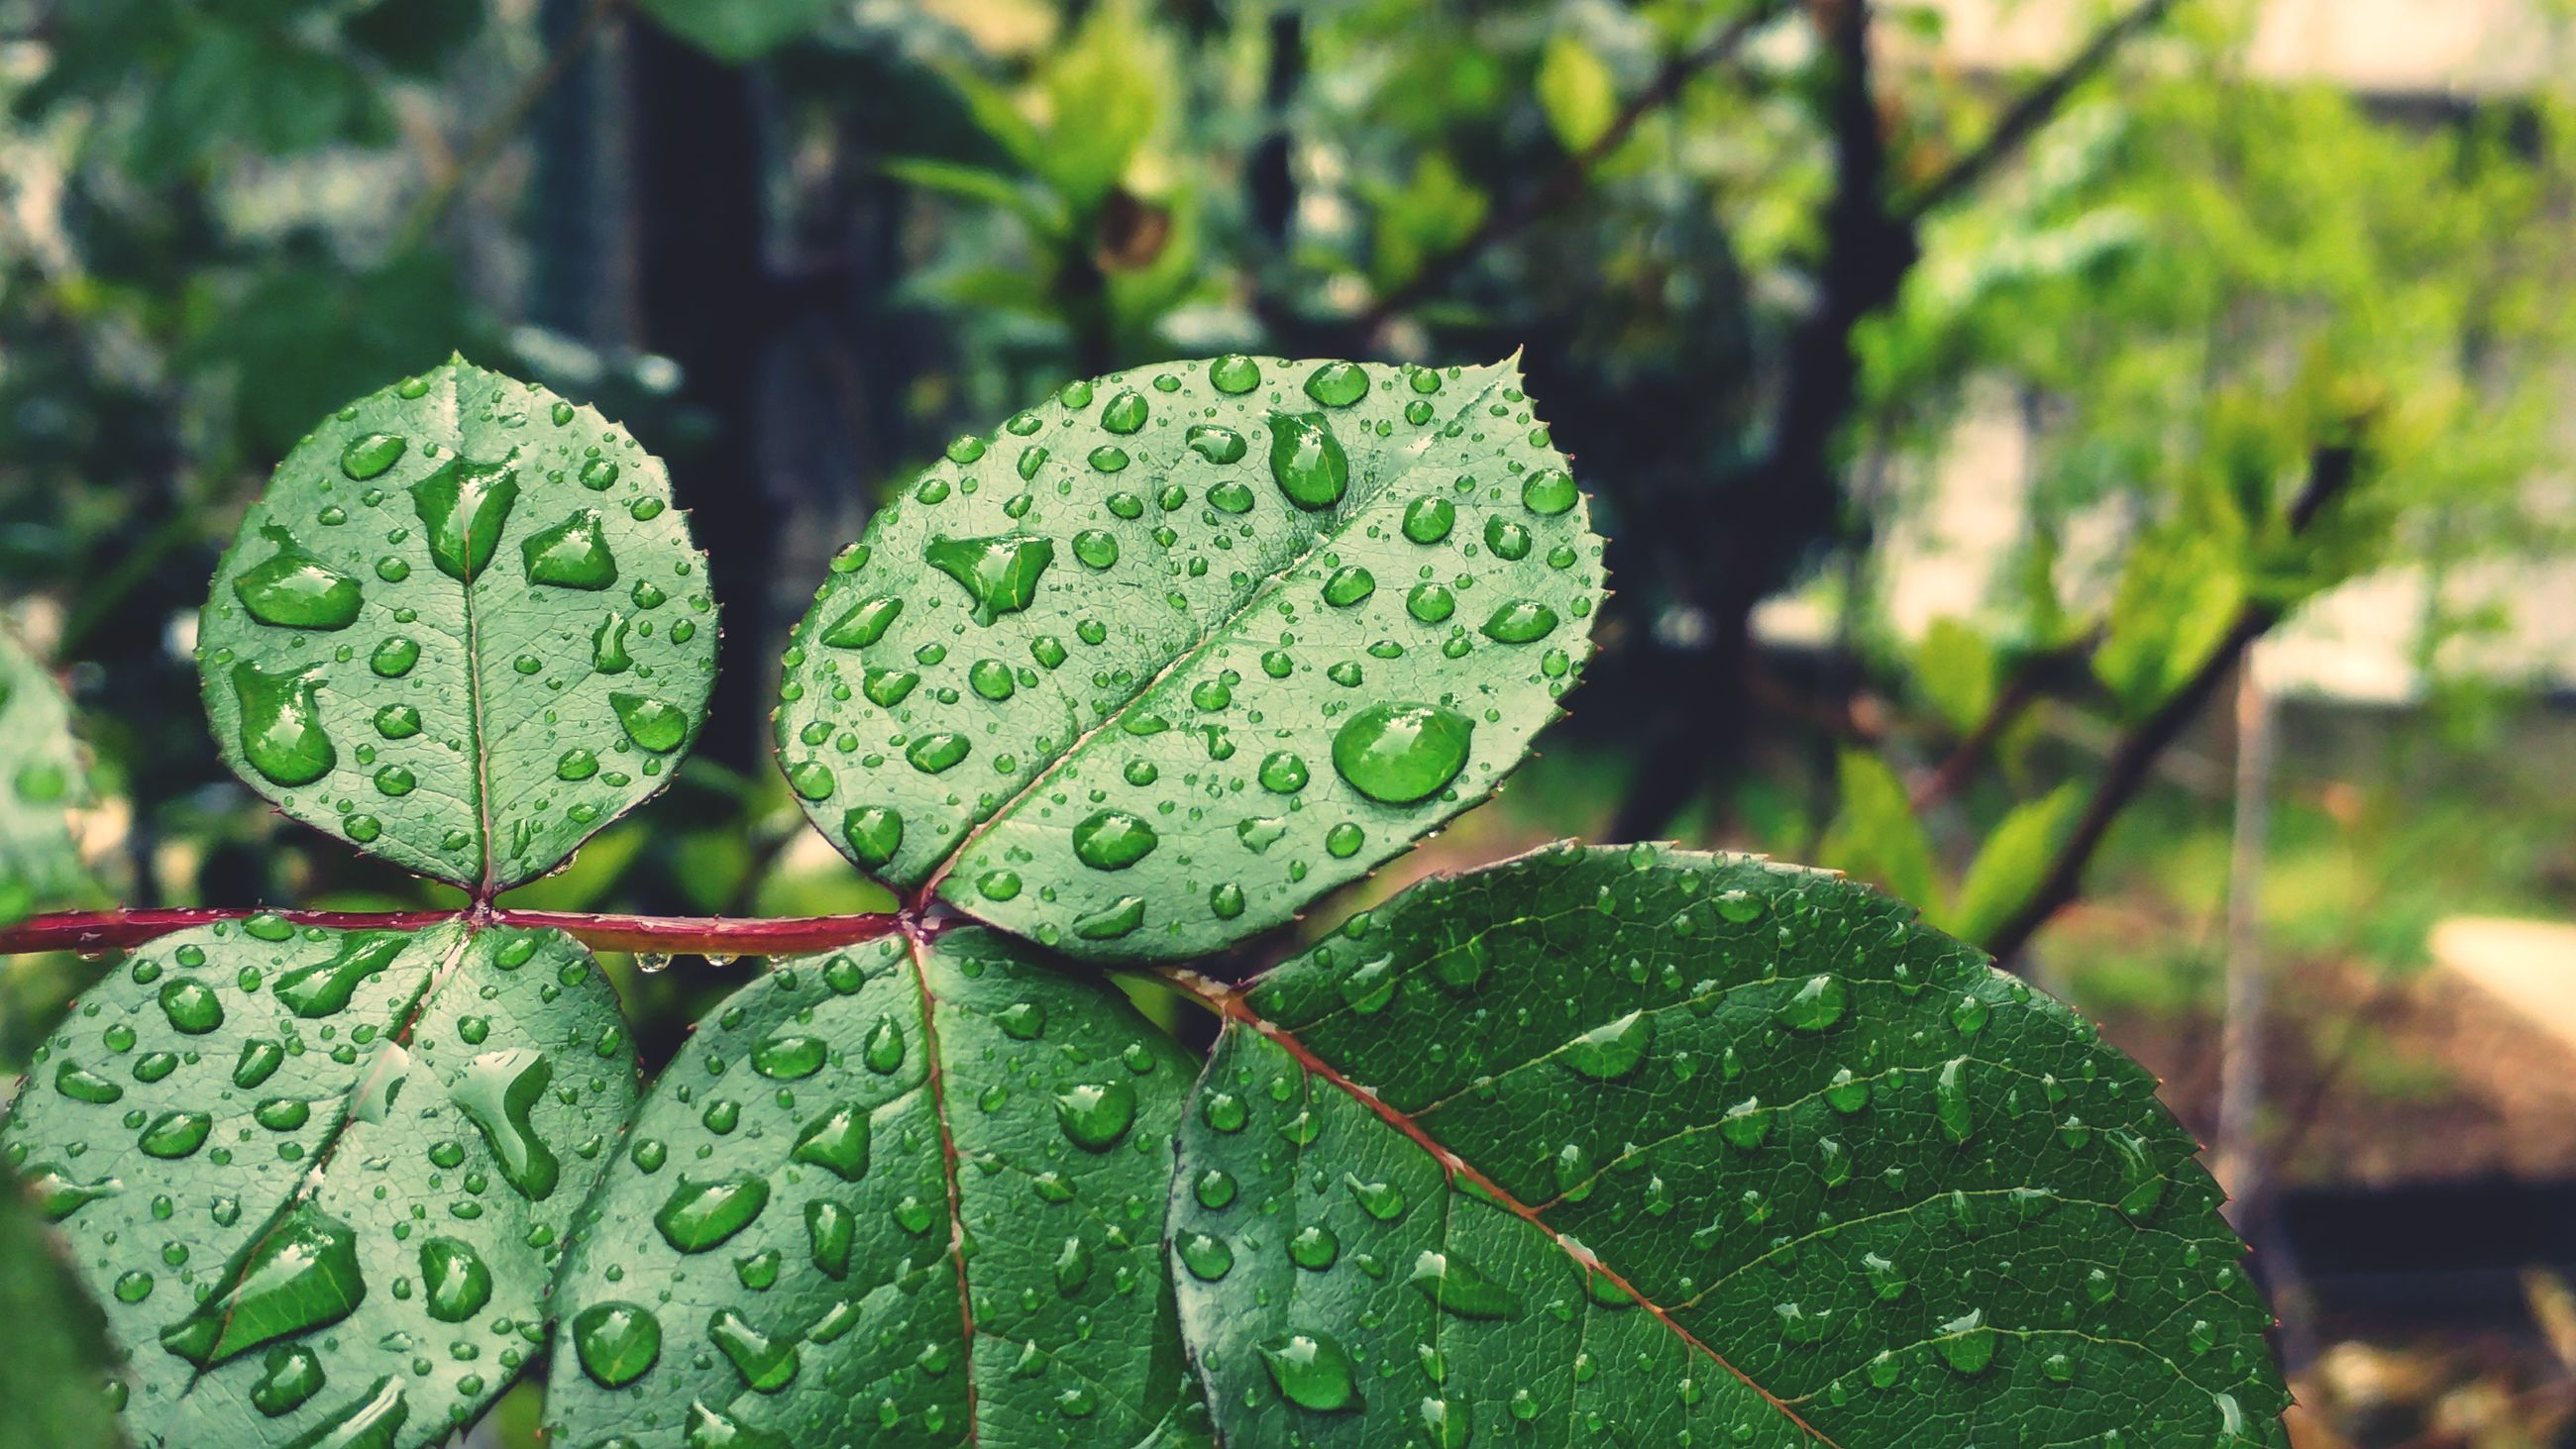 green color, leaf, focus on foreground, close-up, nature, growth, day, drop, no people, freshness, outdoors, wet, water, beauty in nature, plant, raindrop, fragility